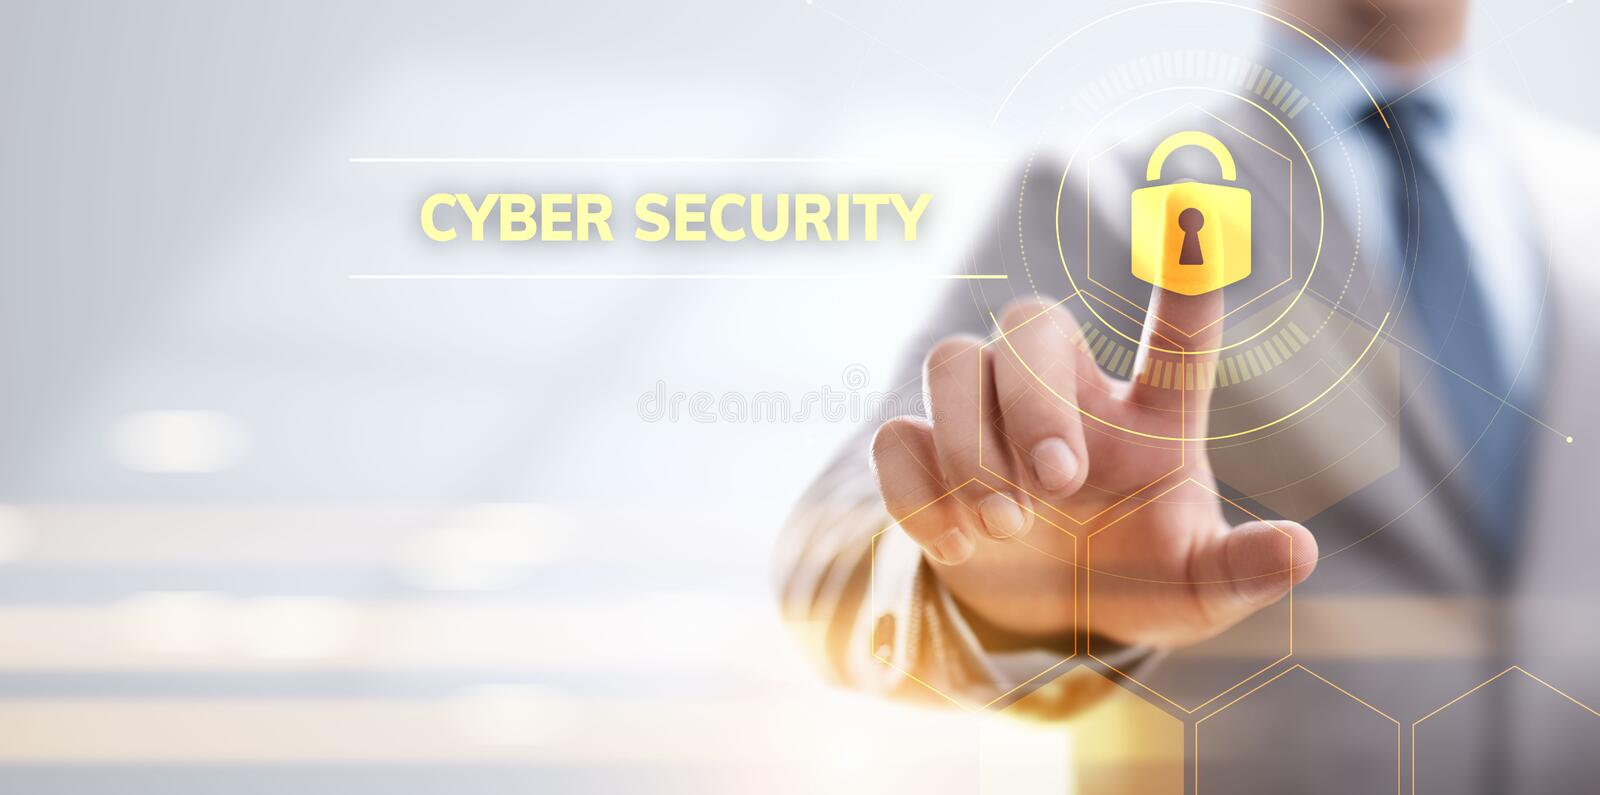 Cyber security data protection information privacy internet technology concept. royalty free illustration